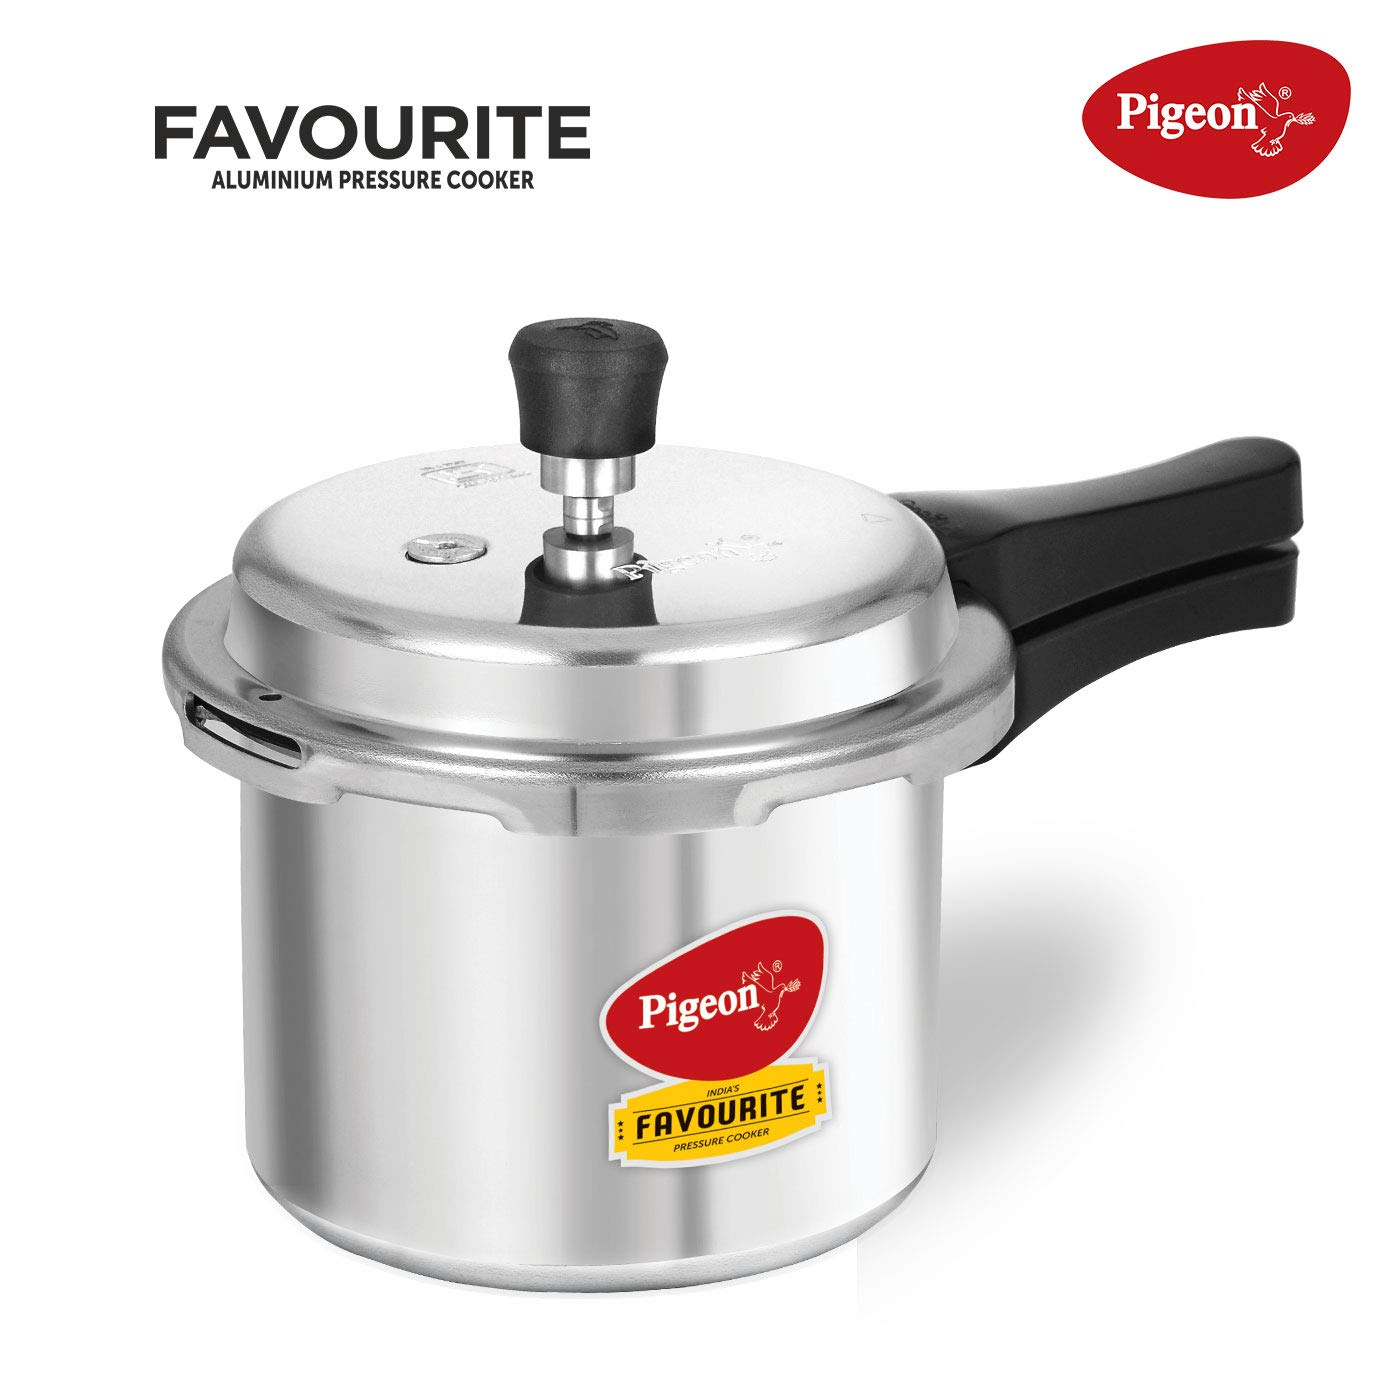 Top 10 Best 5 Litre Pressure Cooker In India 2020 And Buying Guide - Pressure Cooker